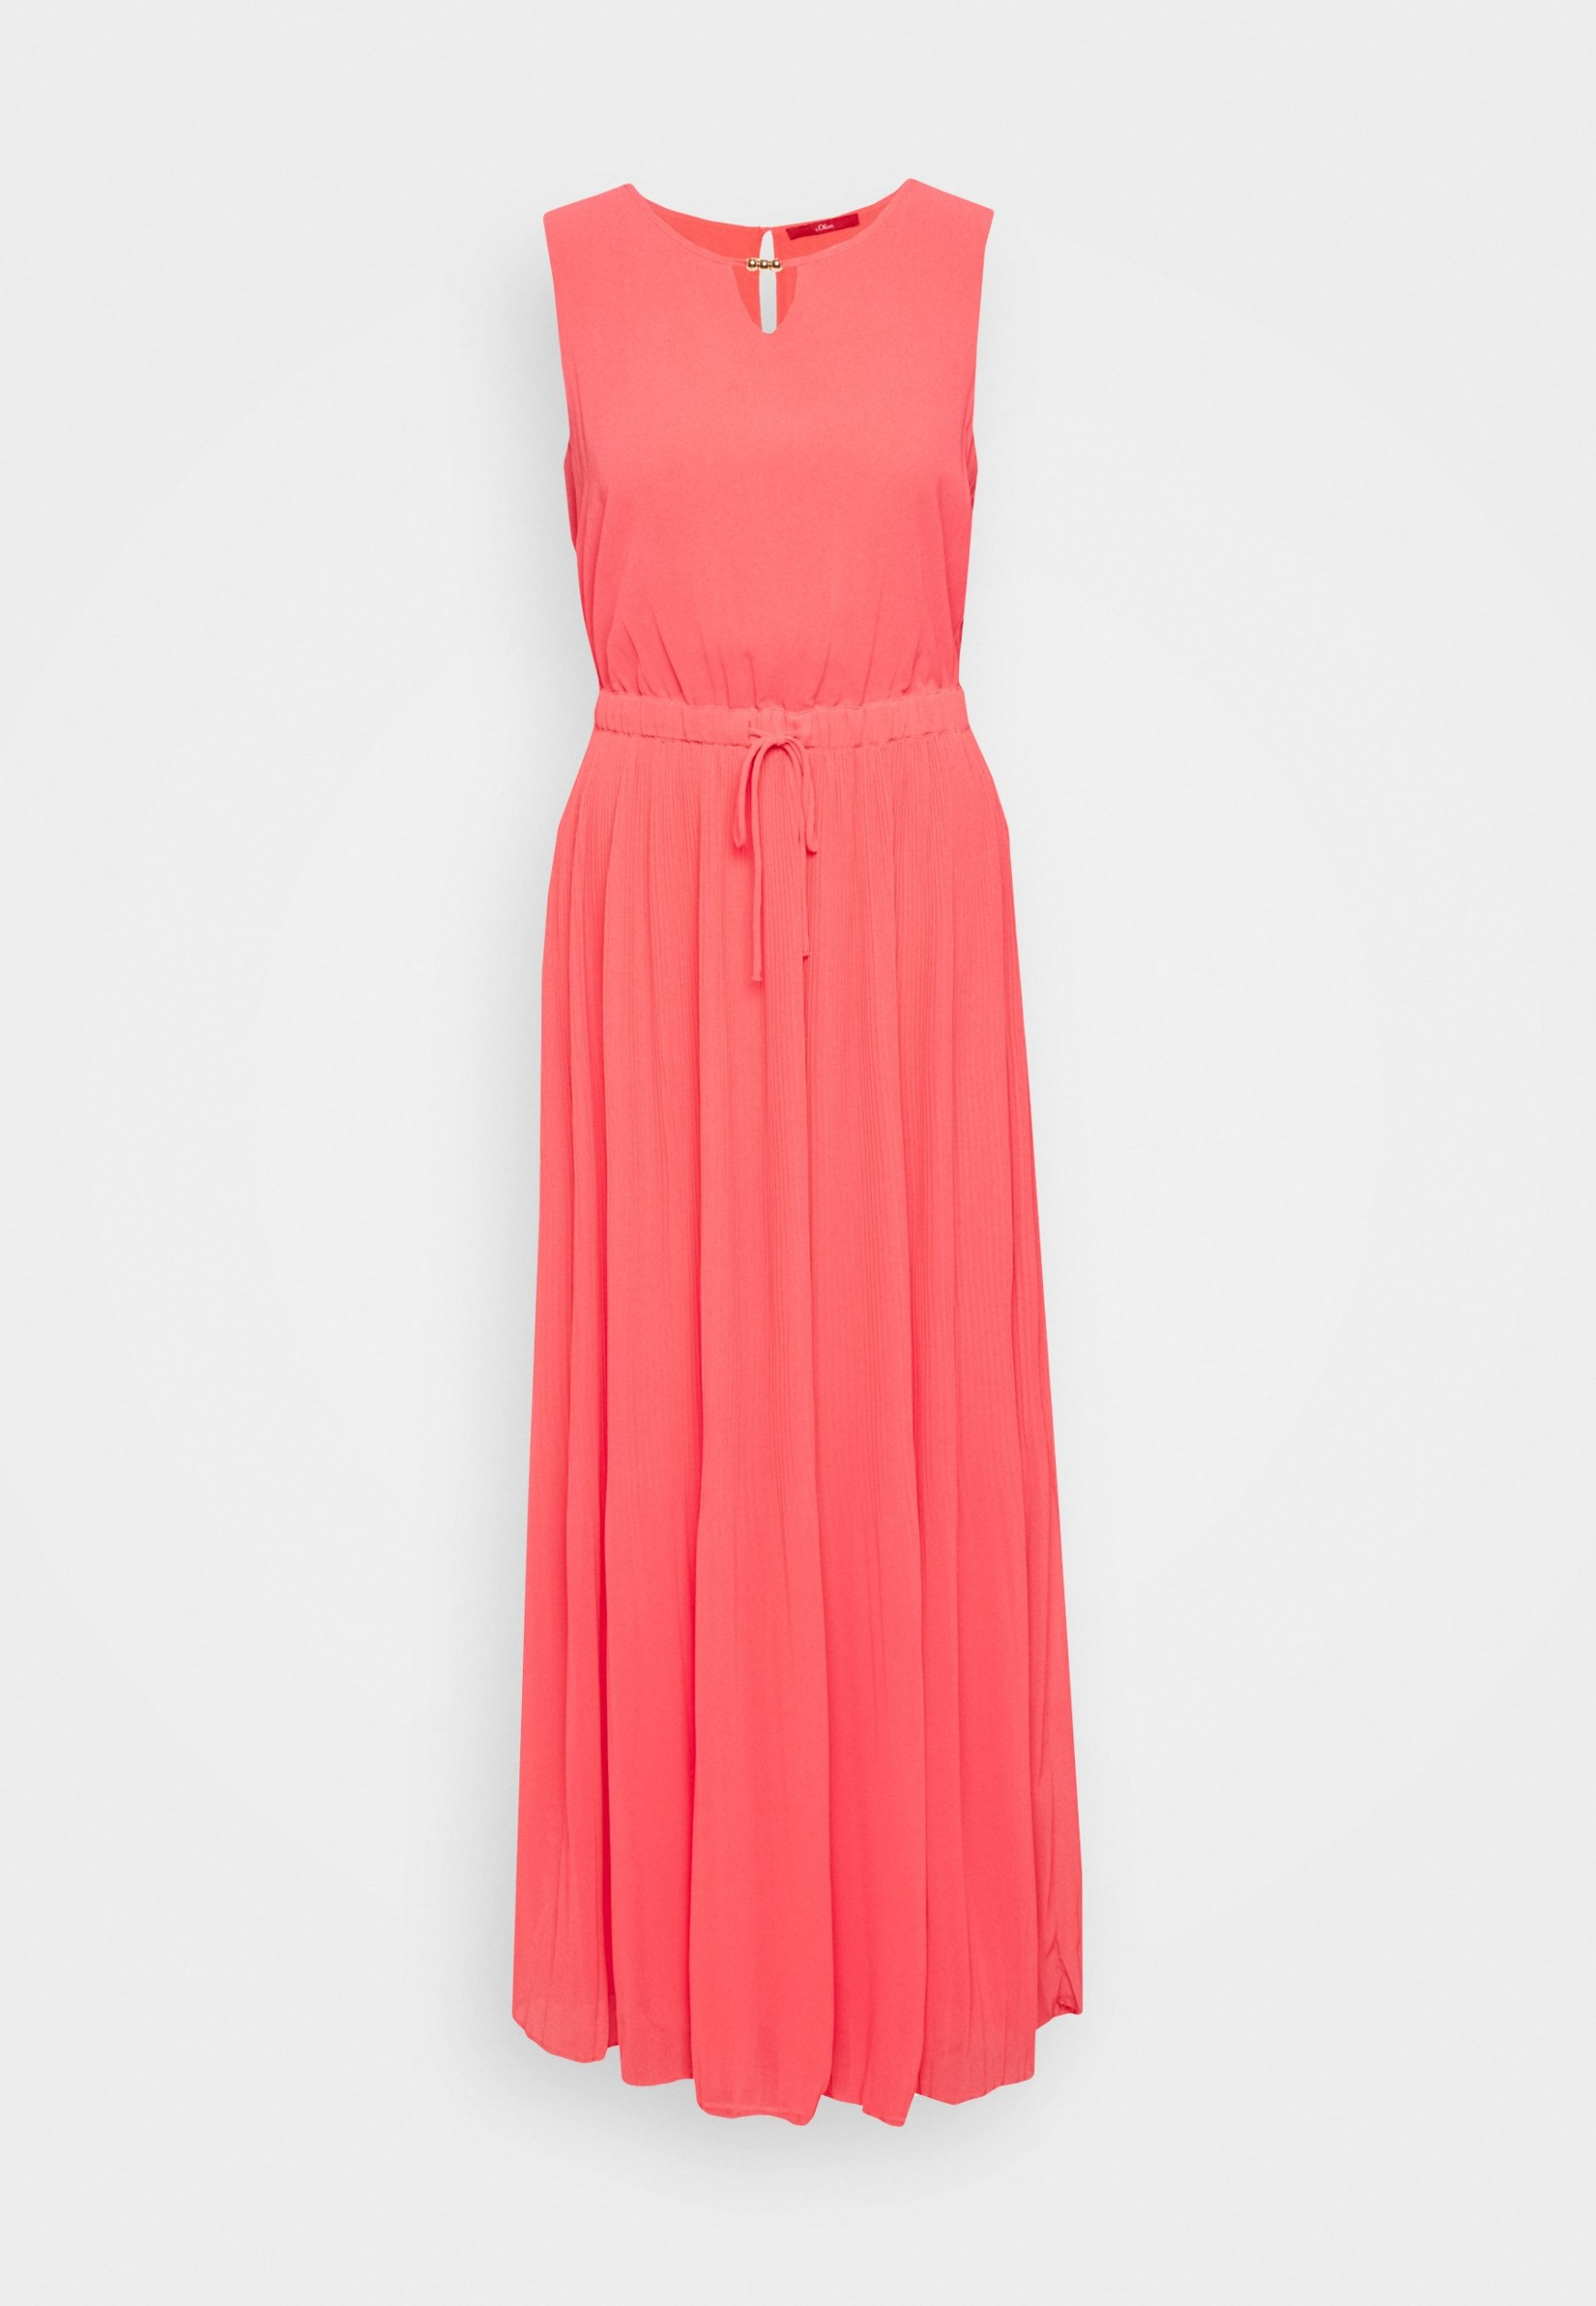 lang maxikleid coral red s oliver maxikleid